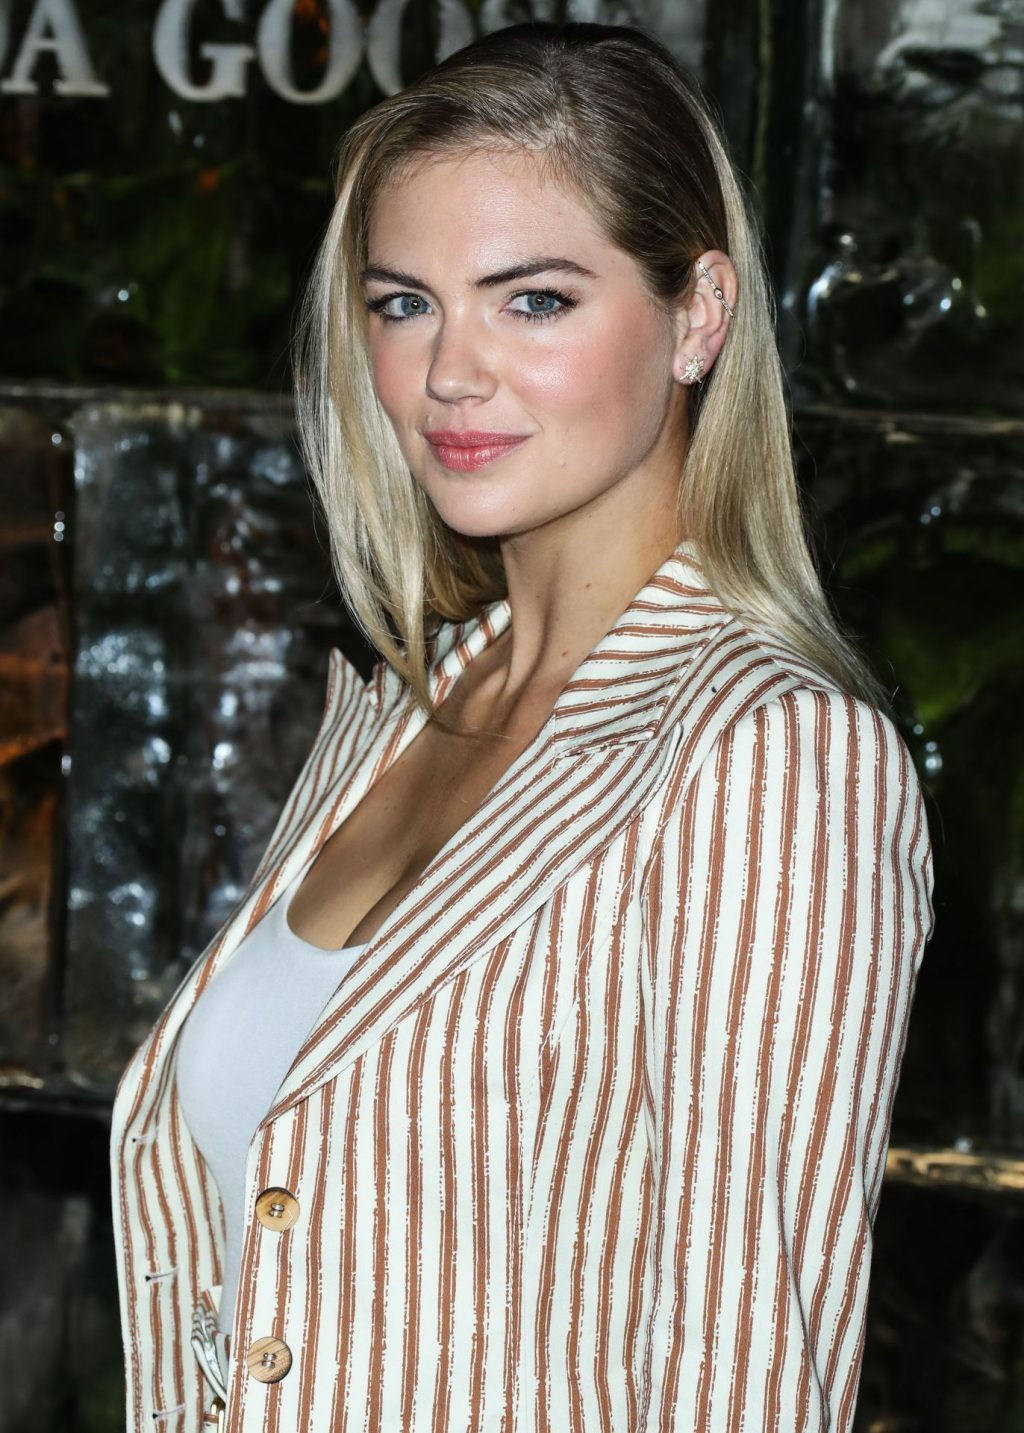 Kate Upton Sexy The Fappening Blog 80 1024x1433 - Kate Upton Attends Canada Goose And Vogue Cocktails & Conversations (104 Photos)